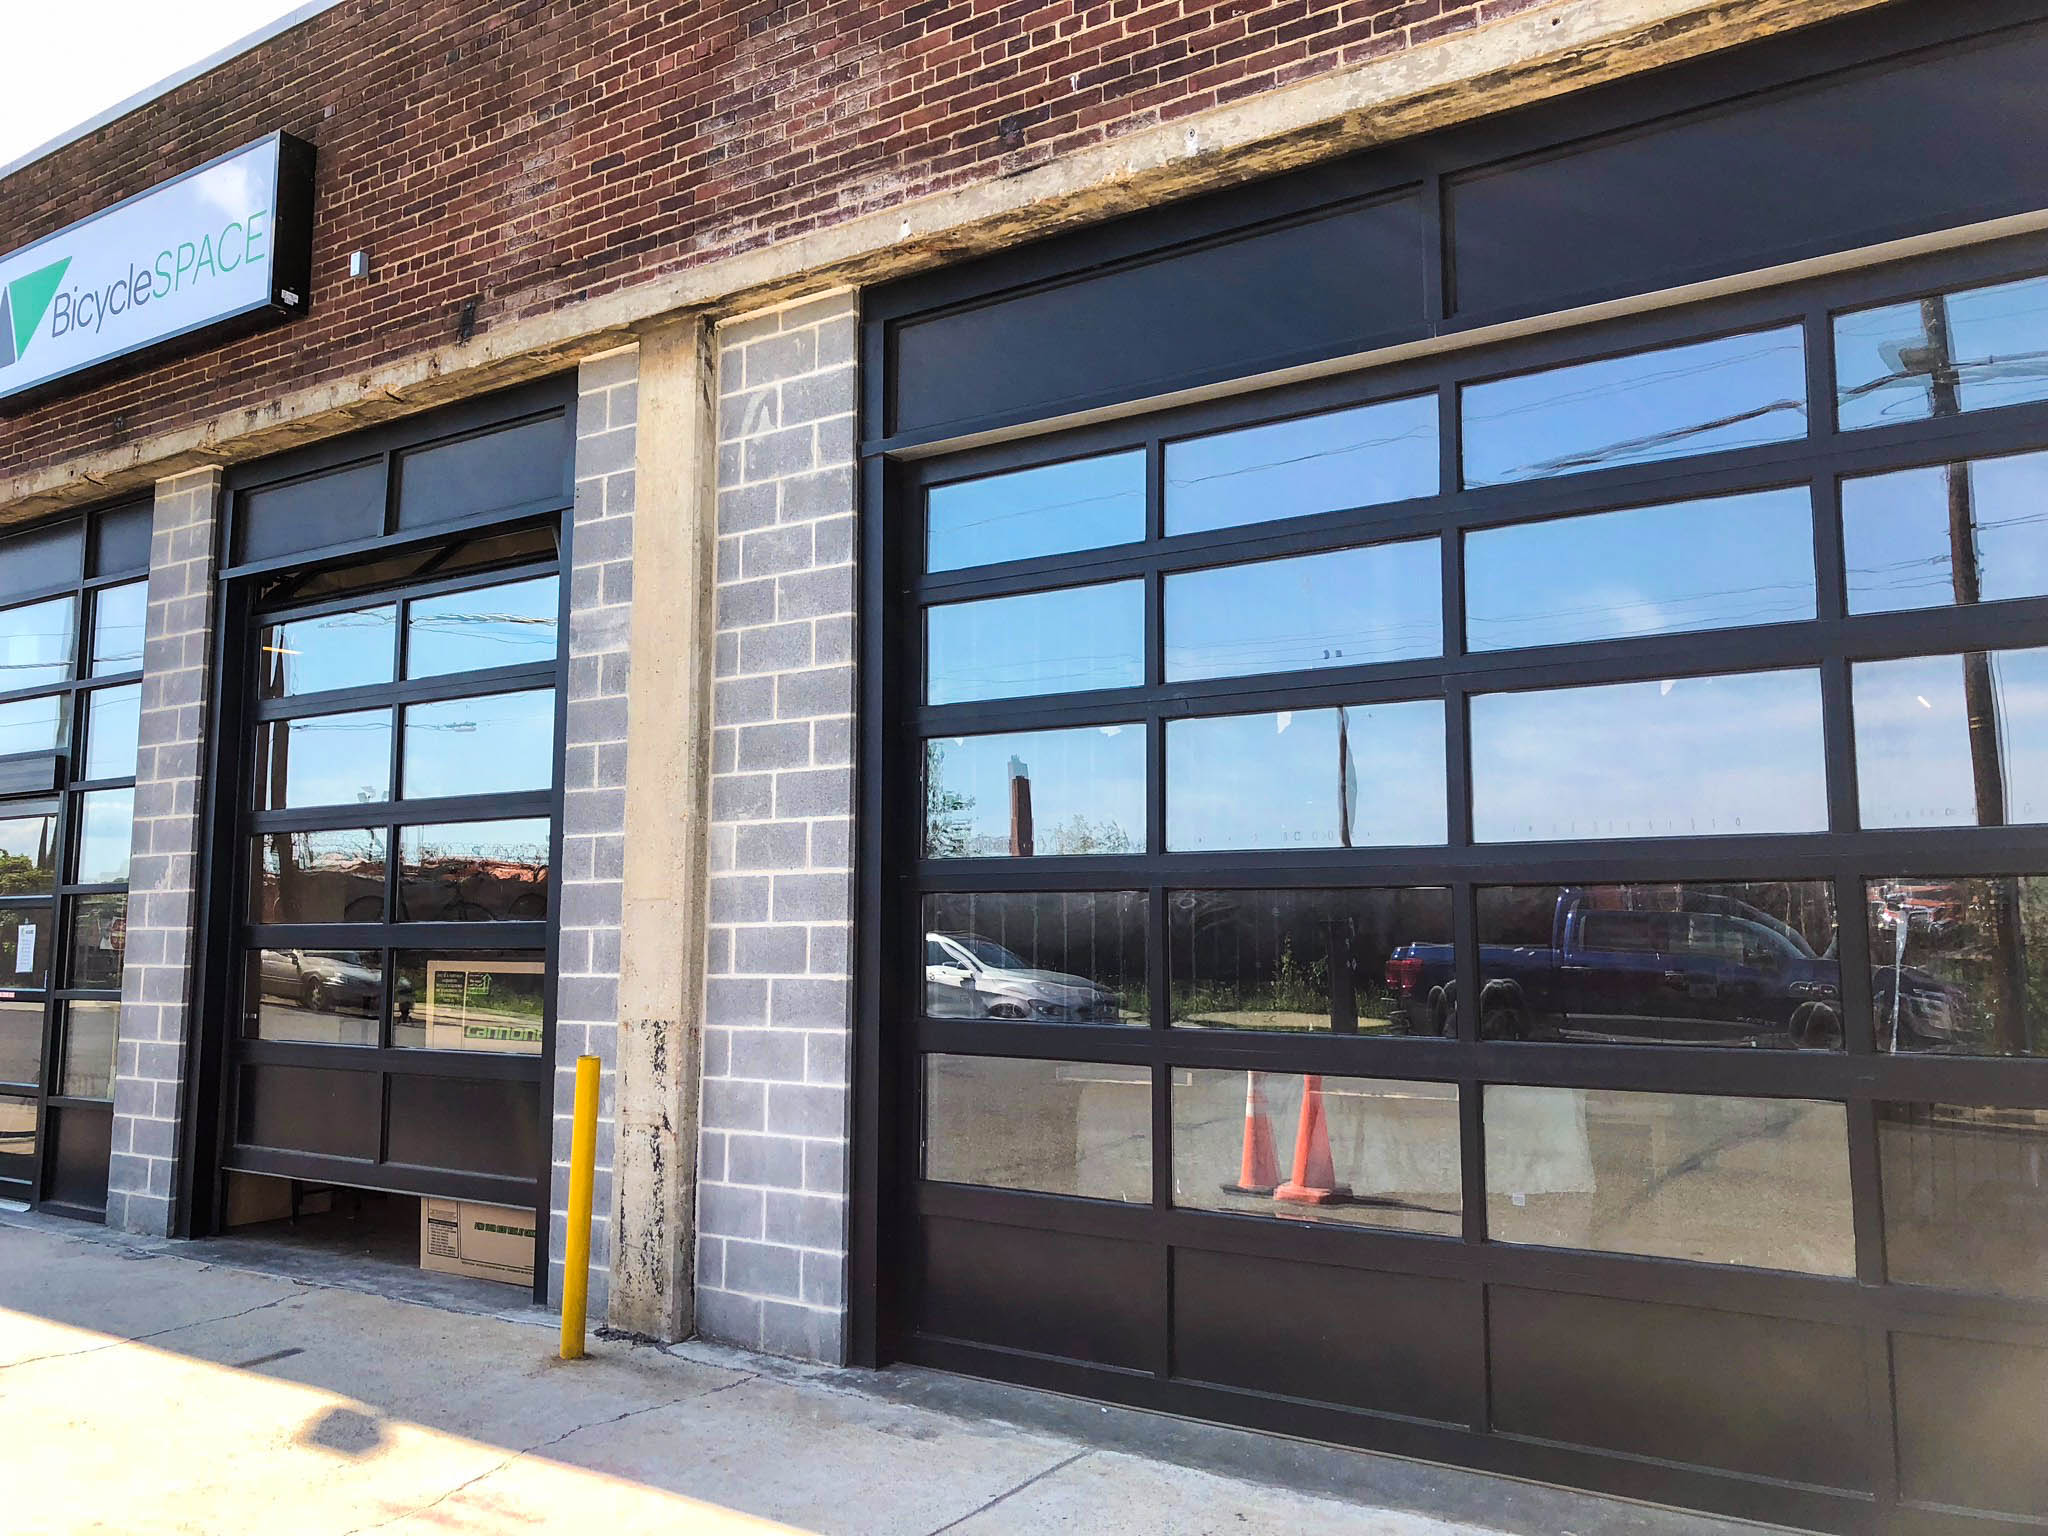 Hect Warehouse - Bicycle Space front windows